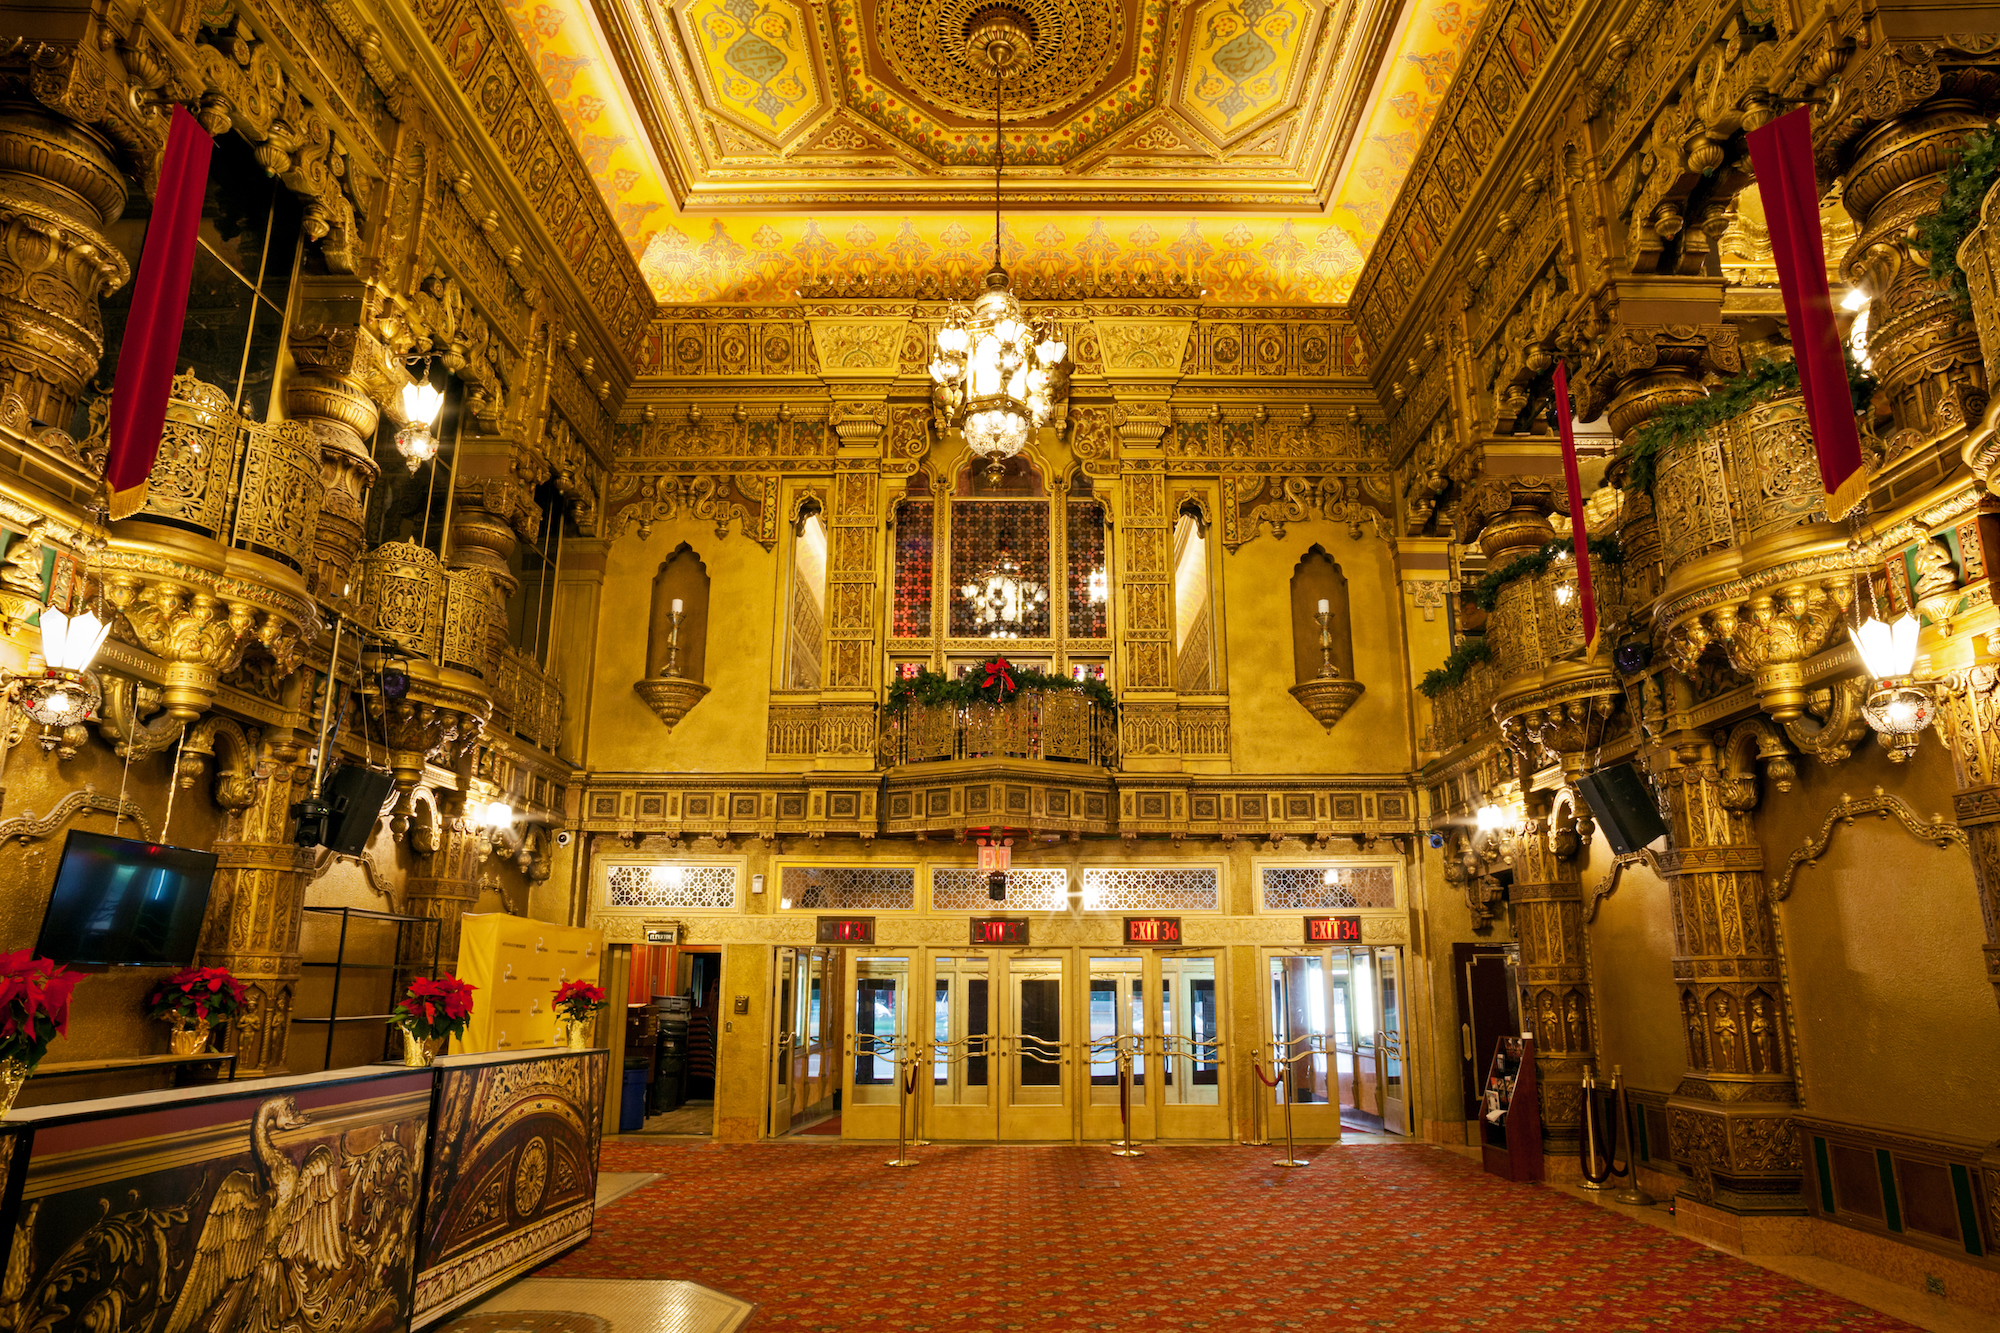 the chandeliers crank down for cleanings and to have their roughly 70 bulbs replaced